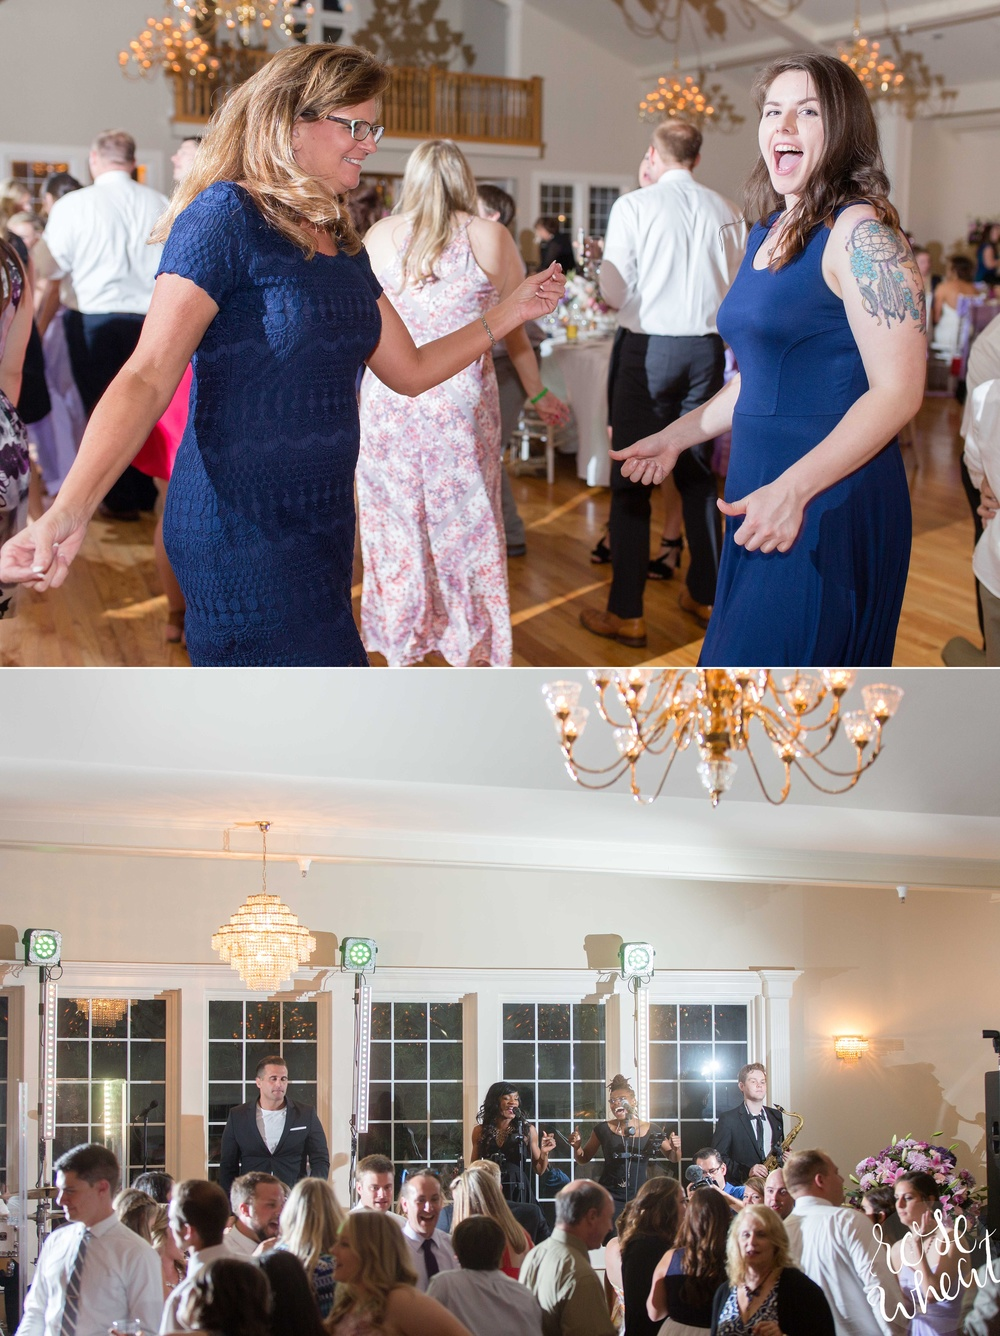 Hawthorne_House_Wedding_Kansas_City_Mo_0119.jpg